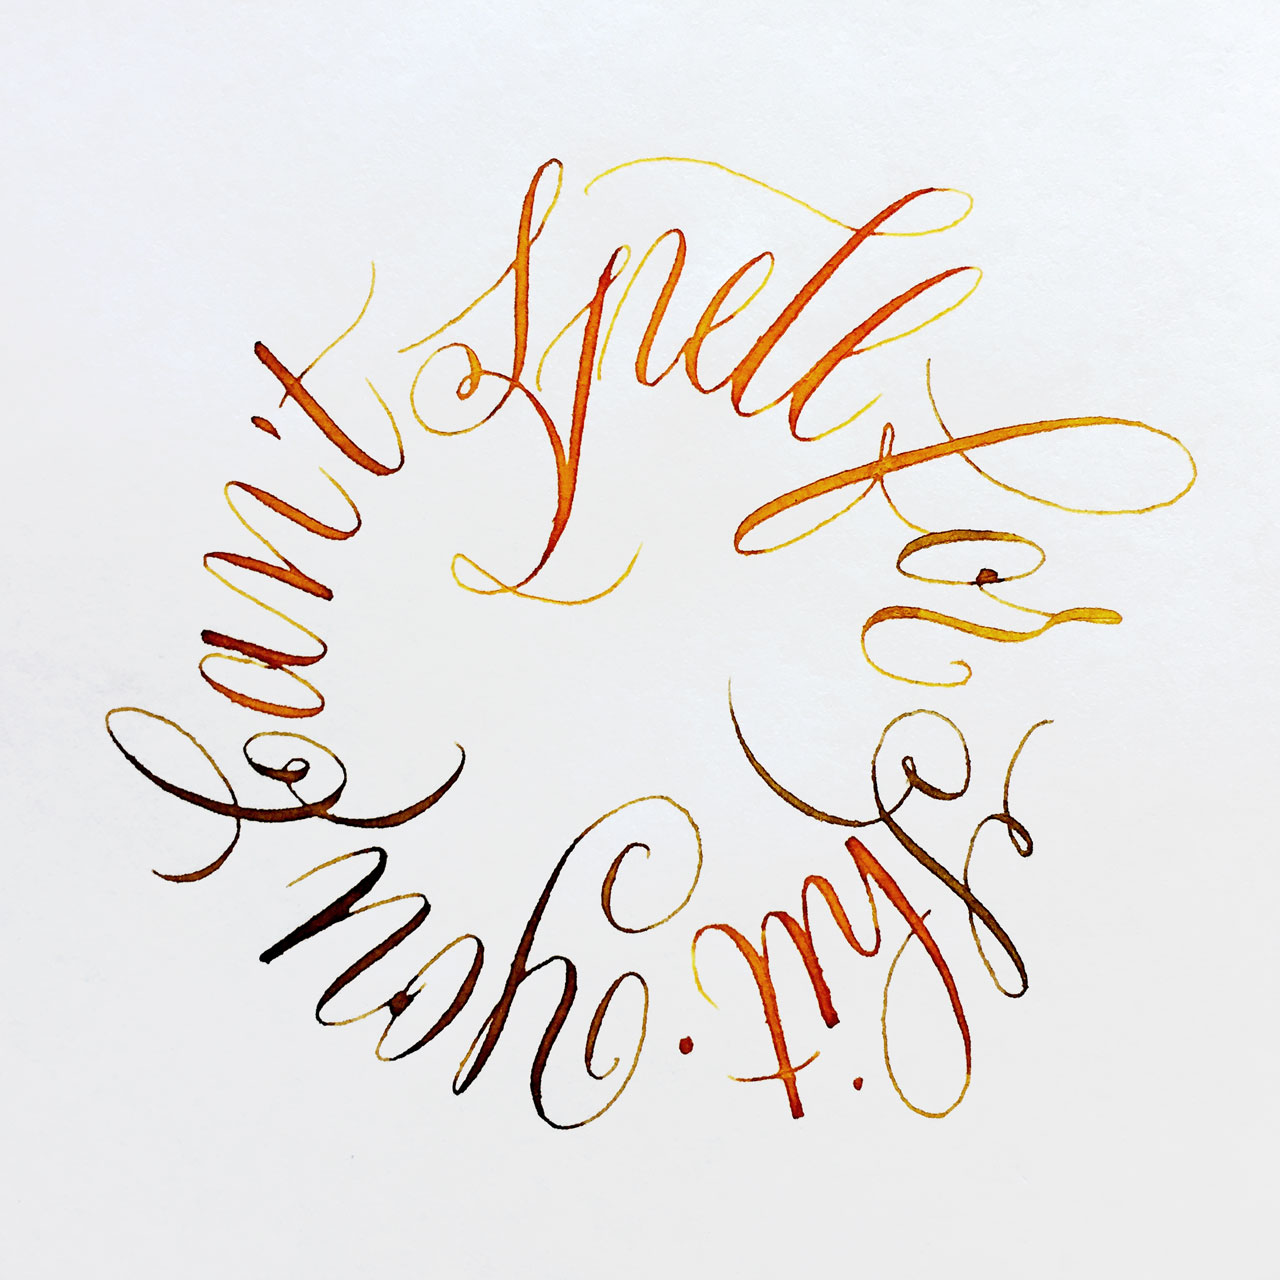 """Post number #57:  """"You can't spell for shit"""" Copperplate calligraphy using a pointed flexible pen and liquid watercolours."""